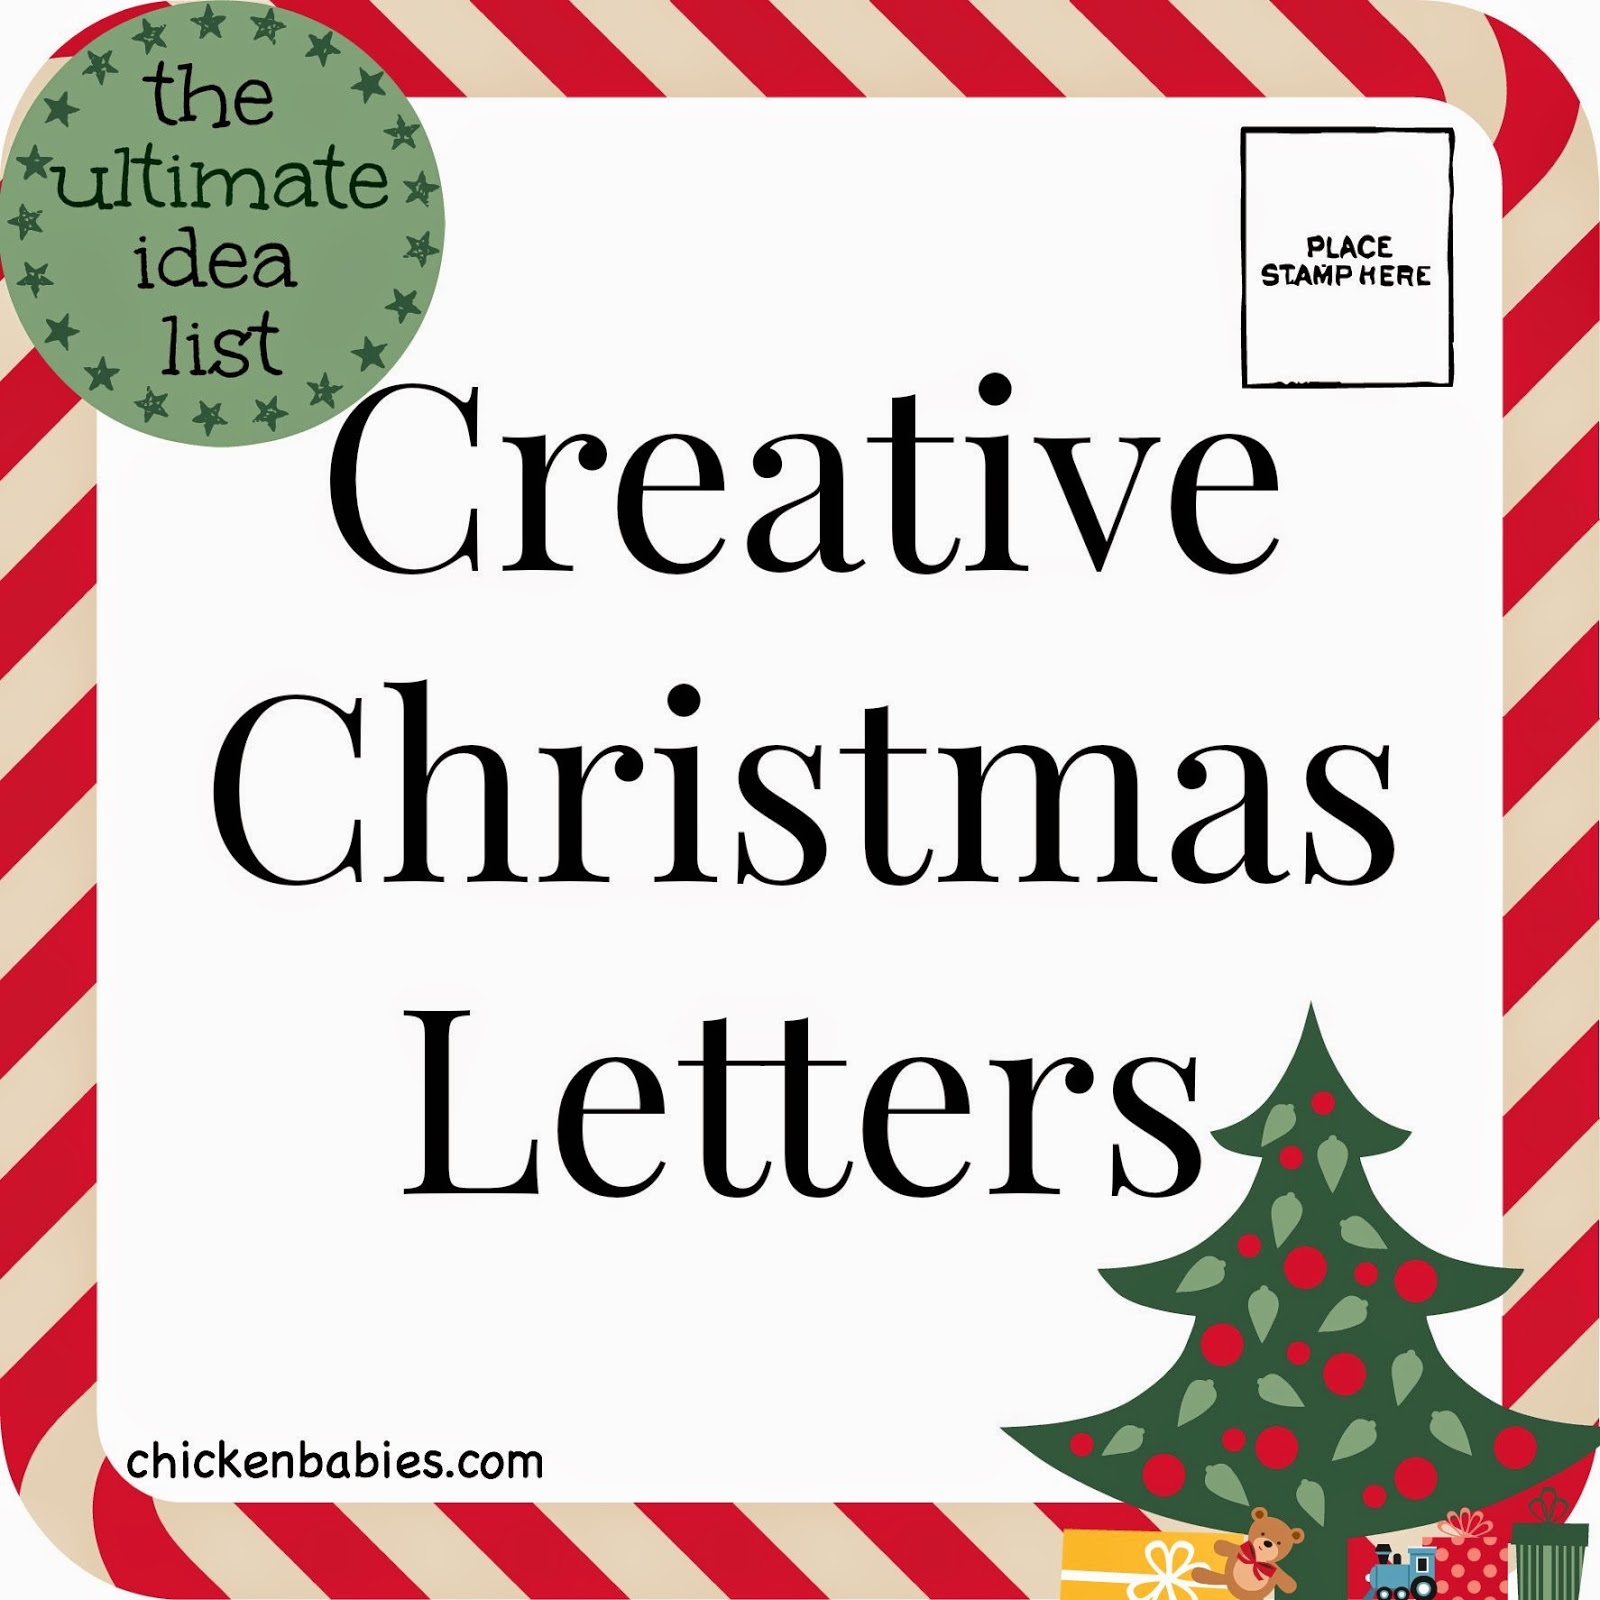 Christmas Letters.Chicken Babies Creative Christmas Letters